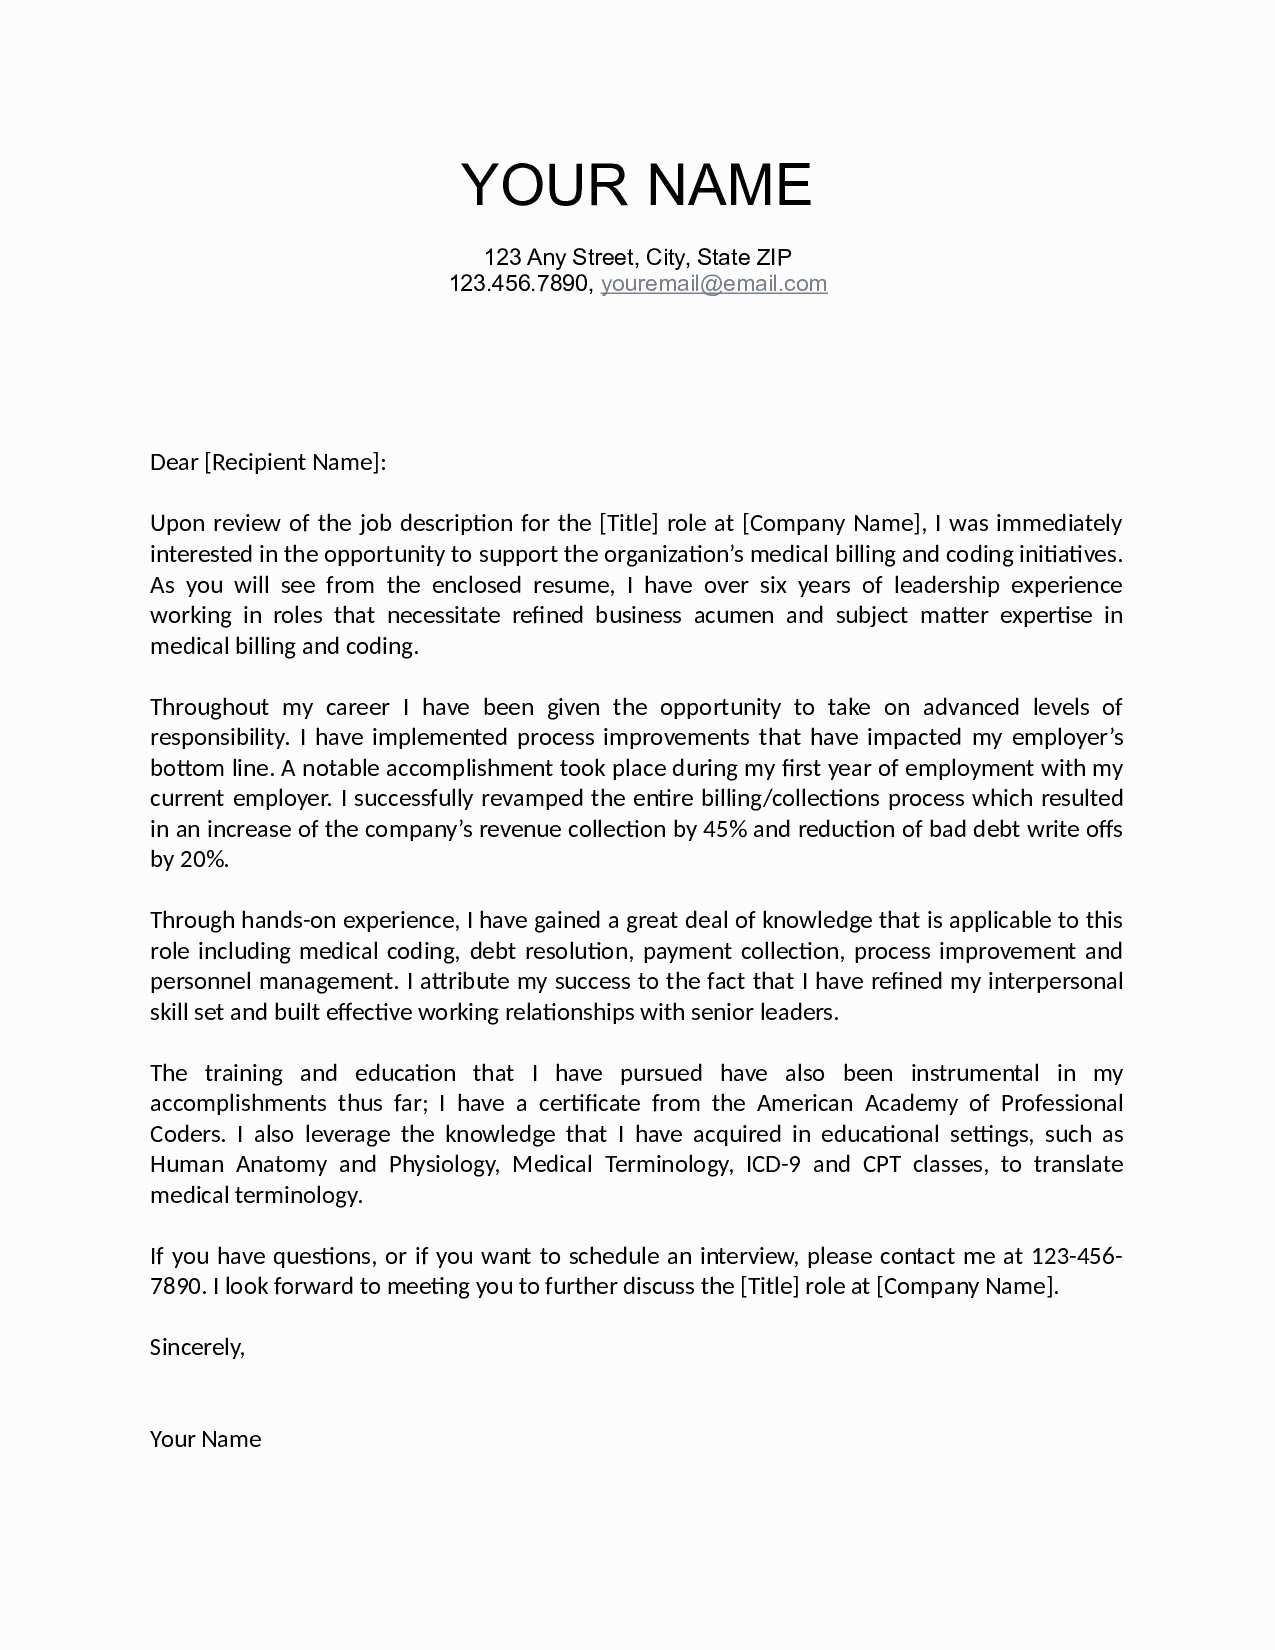 Email Letter Of Recommendation Template - Best Re Mendation Letter Template for Job